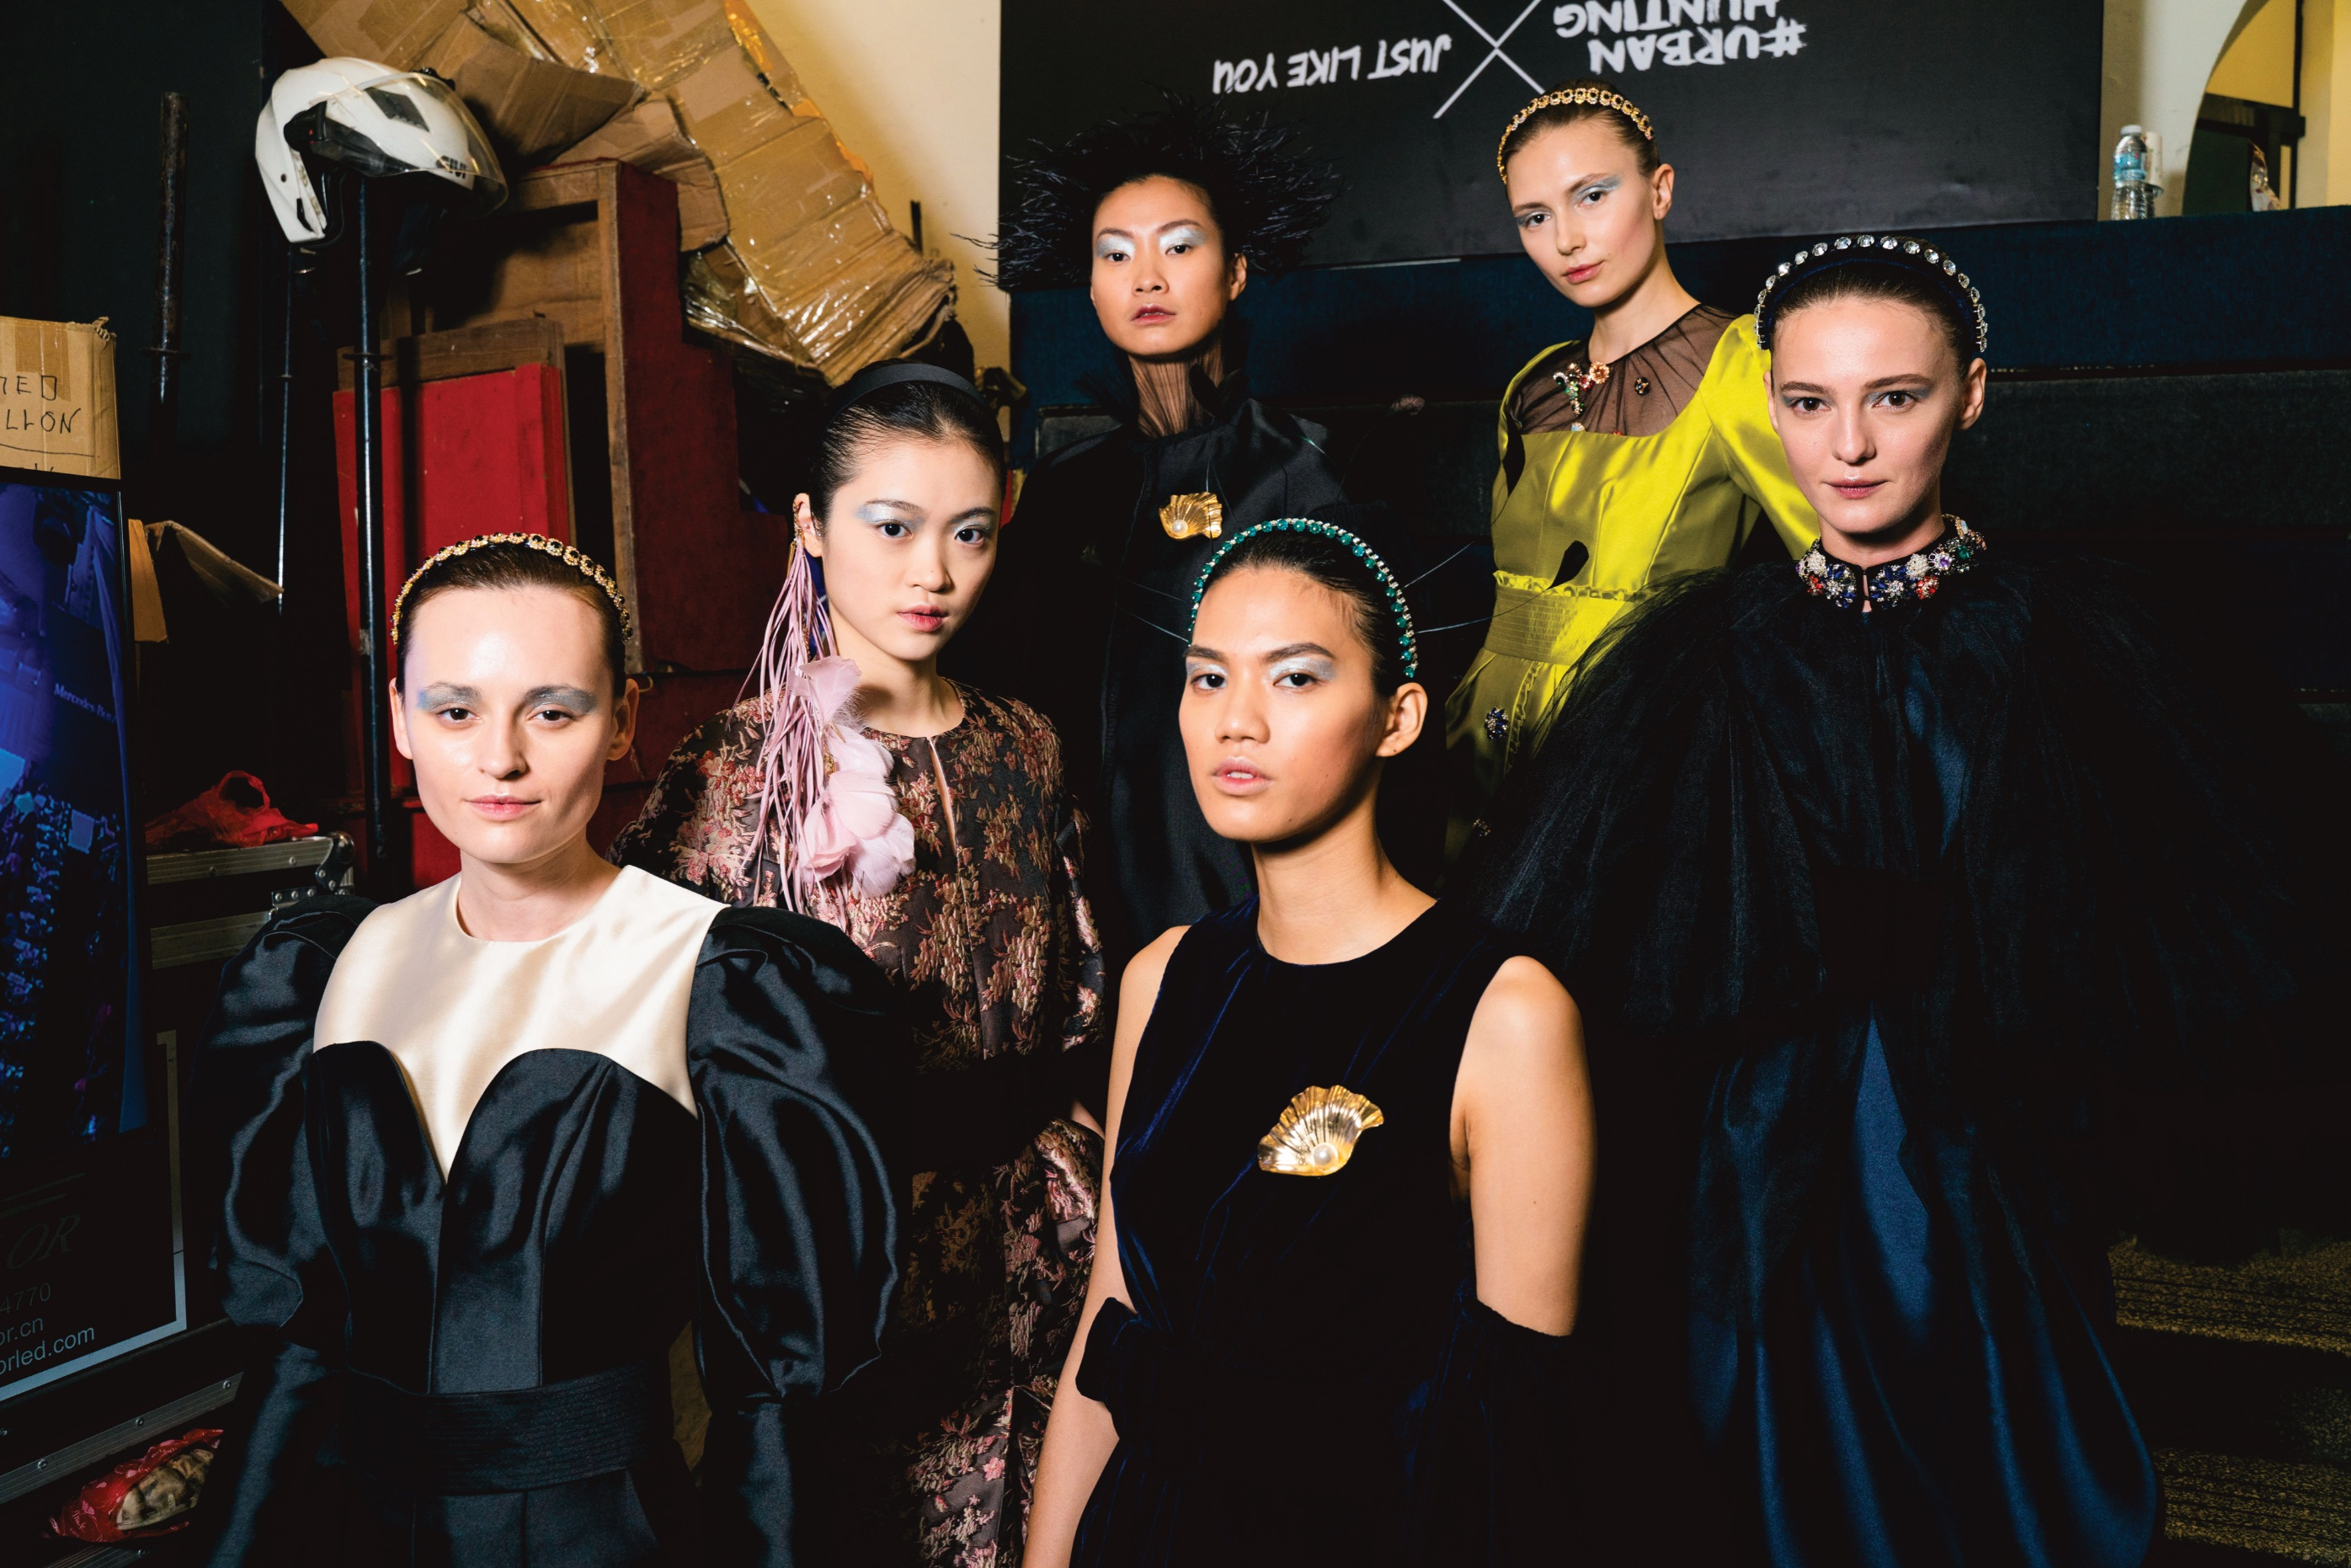 Khoon Hooi on his Fall/Winter 2019 collection runway show